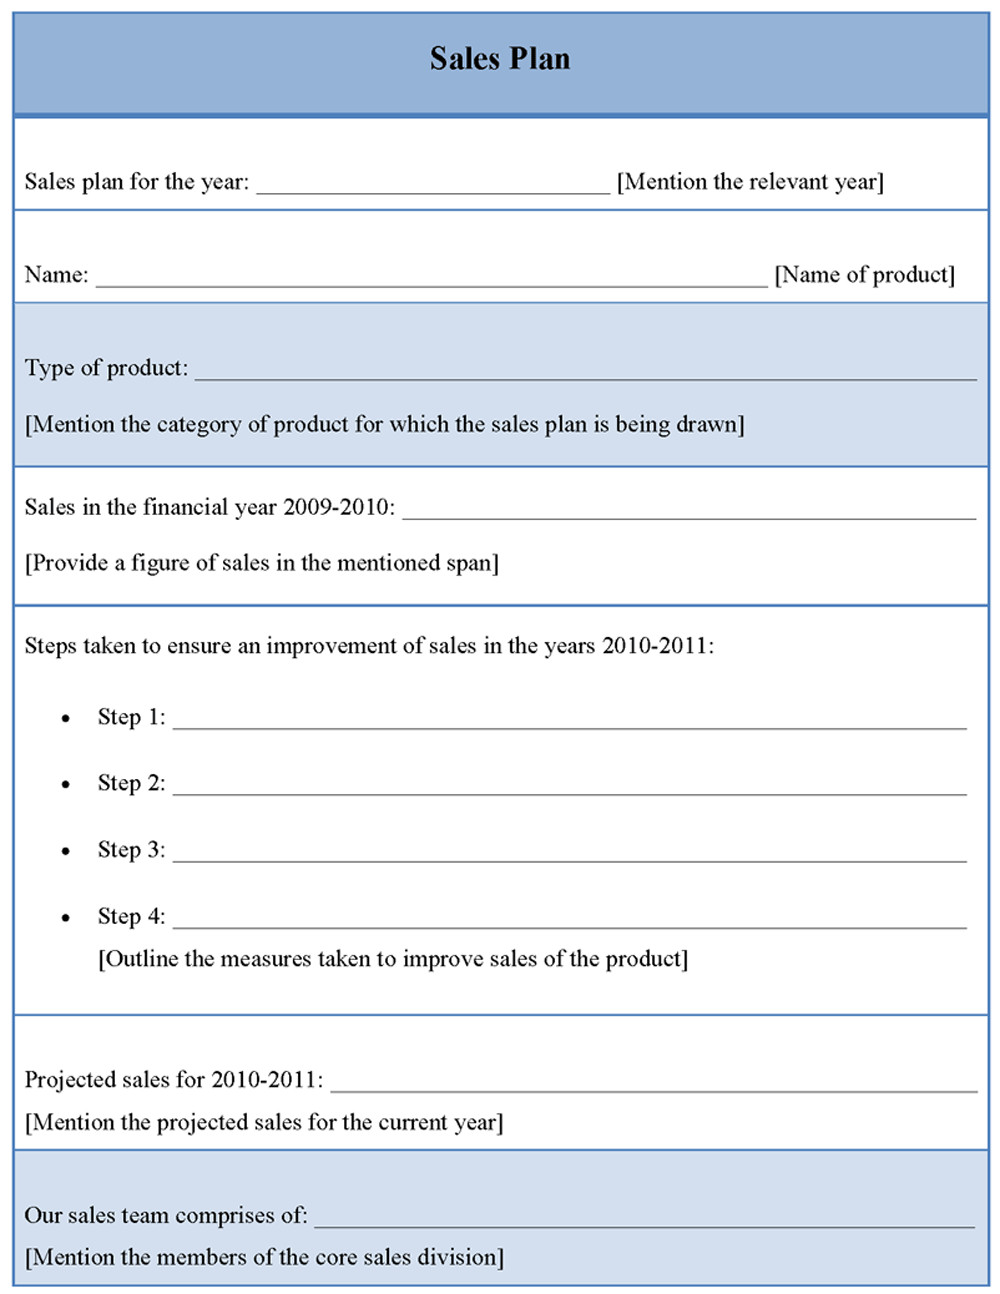 Sales Plan Template Word Plan Template for Sales Sample Of Sales Plan Template